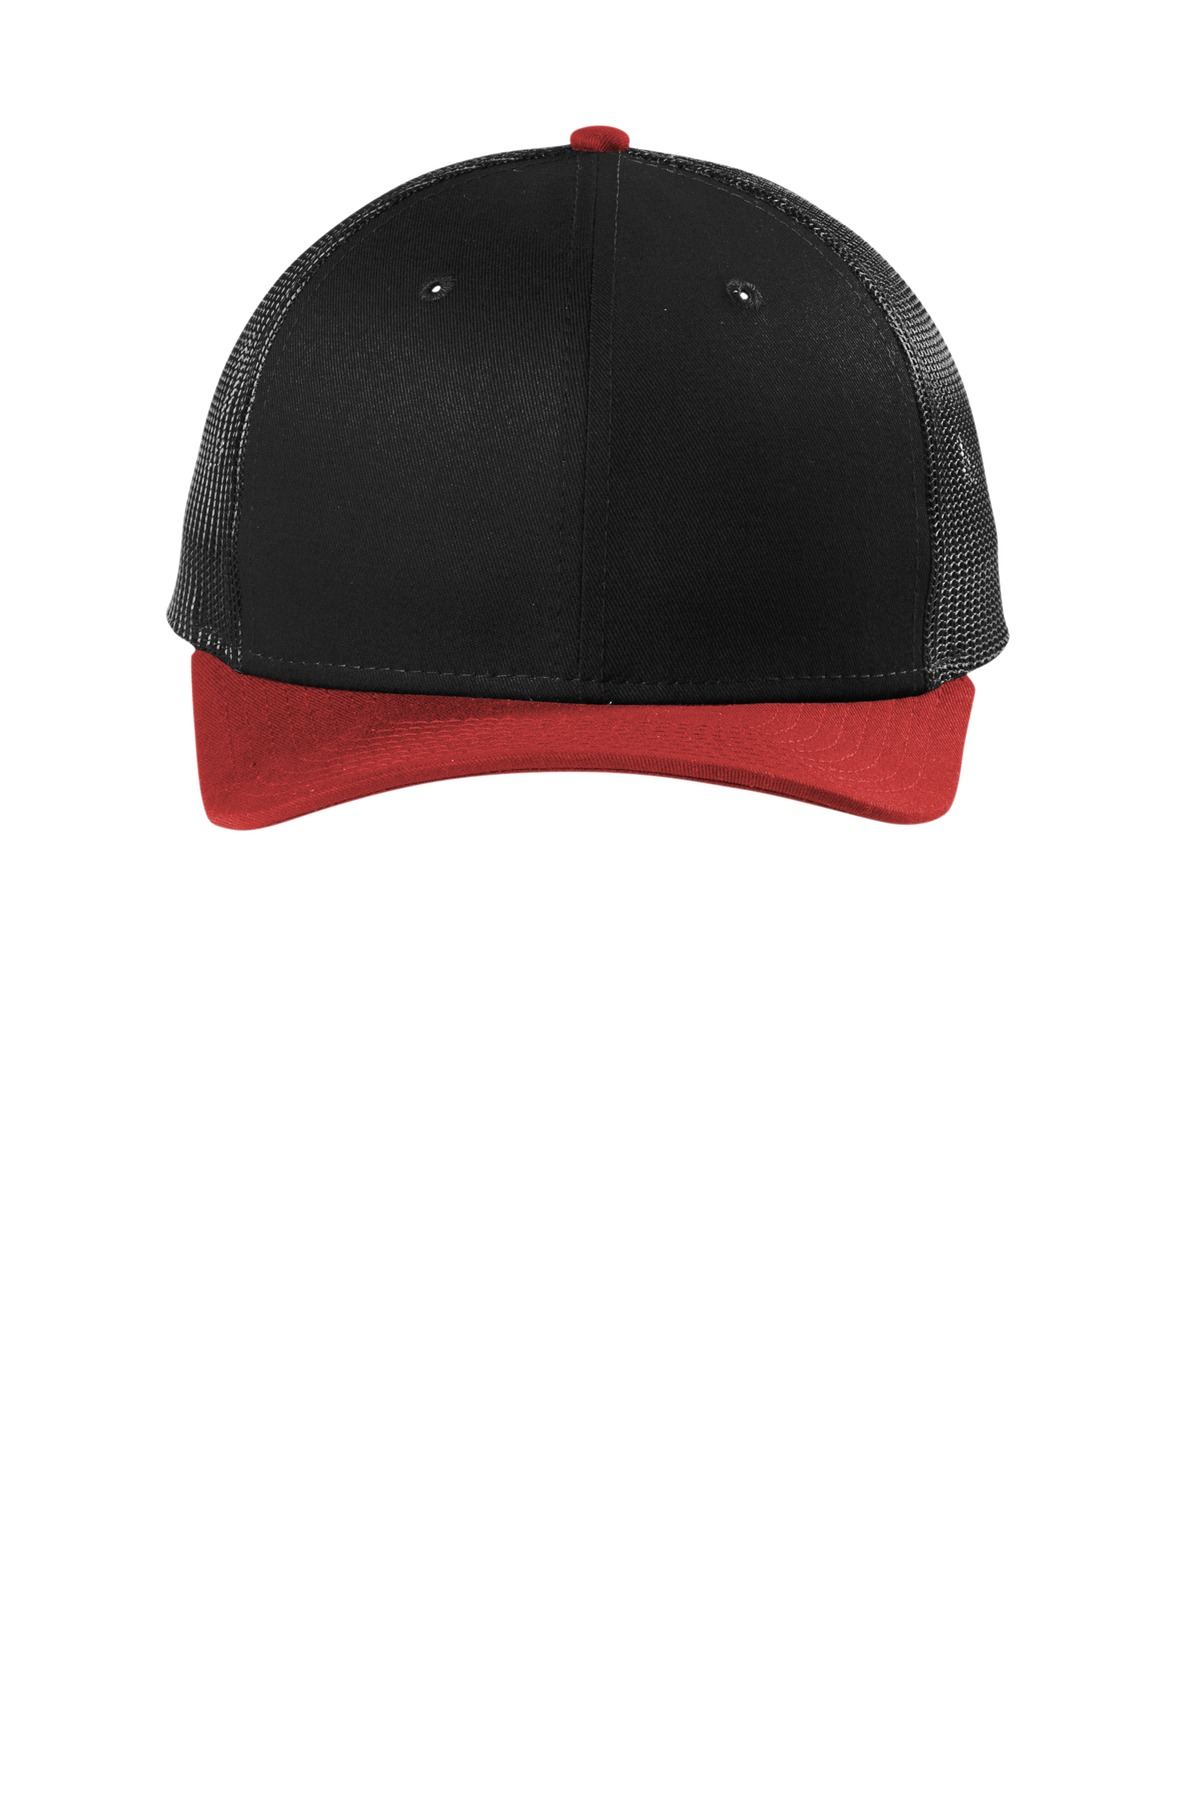 New Era  ®   Snapback Low Profile Trucker Cap   NE207 - Black/ Scarlet